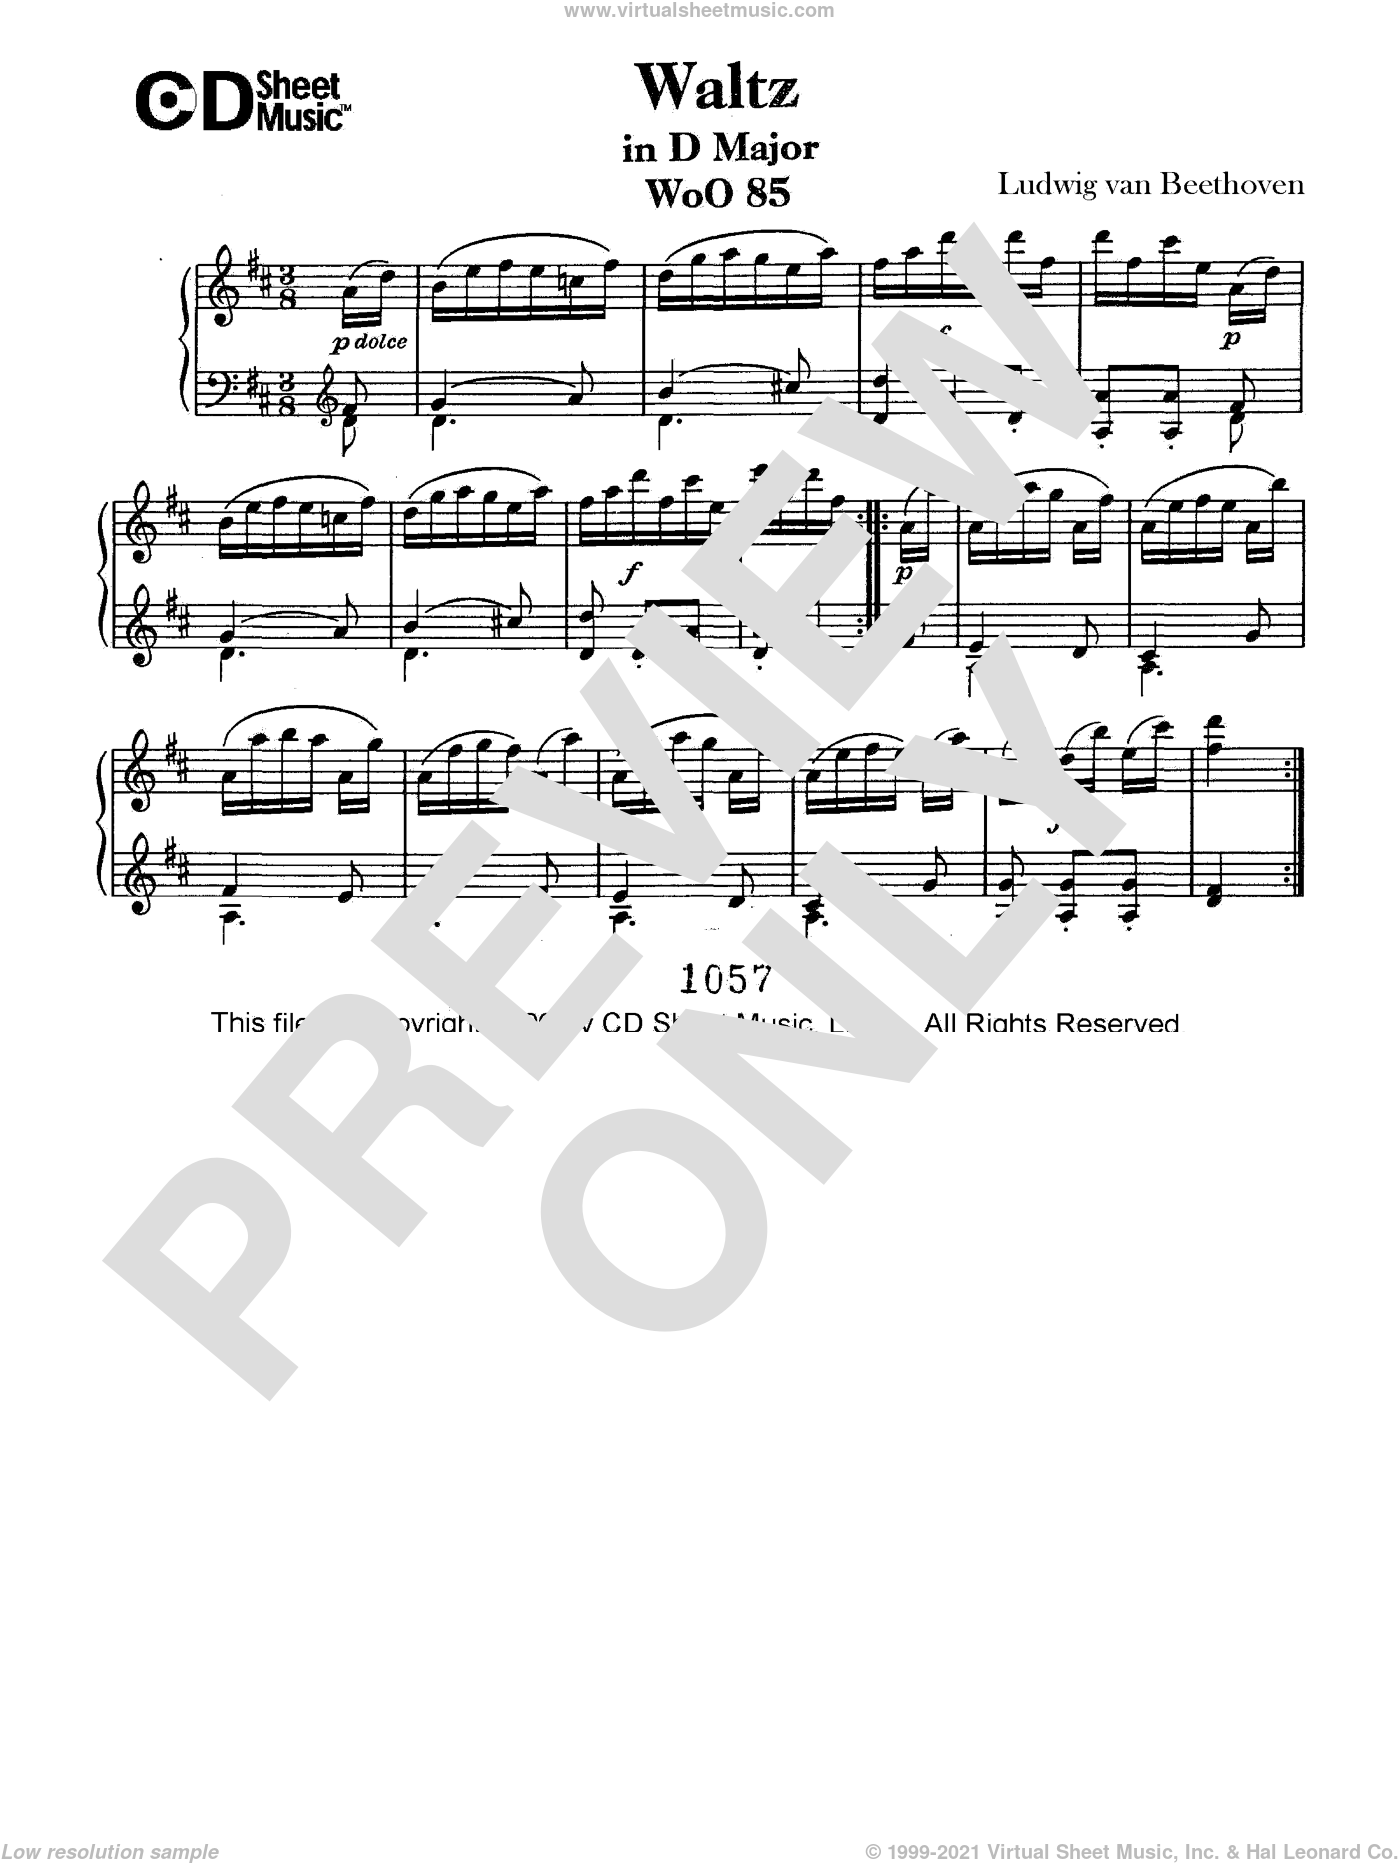 Waltz In D Major, Woo 85 sheet music for piano solo by Ludwig van Beethoven, classical score, intermediate skill level